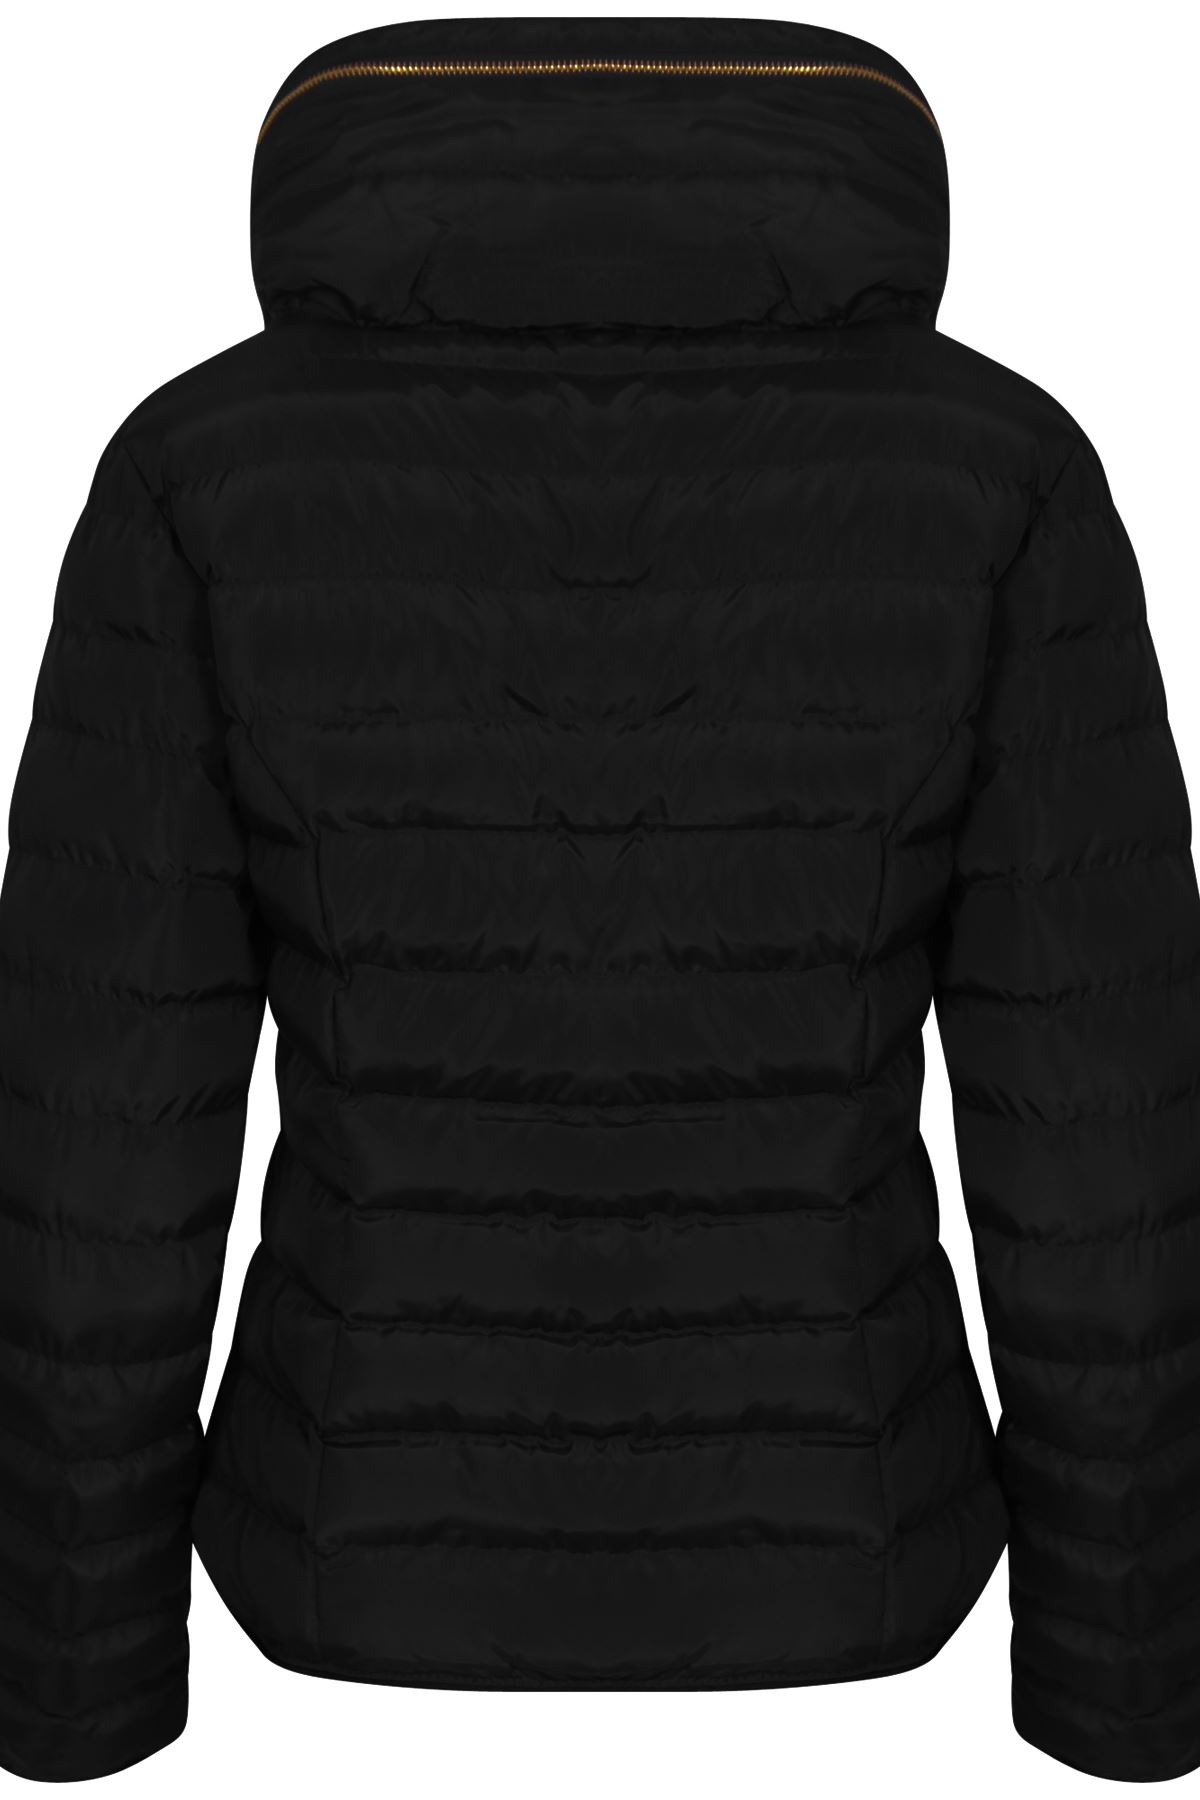 WOMEN WARM PADDED COAT is rated out of 5 by 8. Rated 4 out of 5 by Kristi from Love it Excellent coat that is warmer than it looks. Love the quilting and length, which keeps legs warm too.